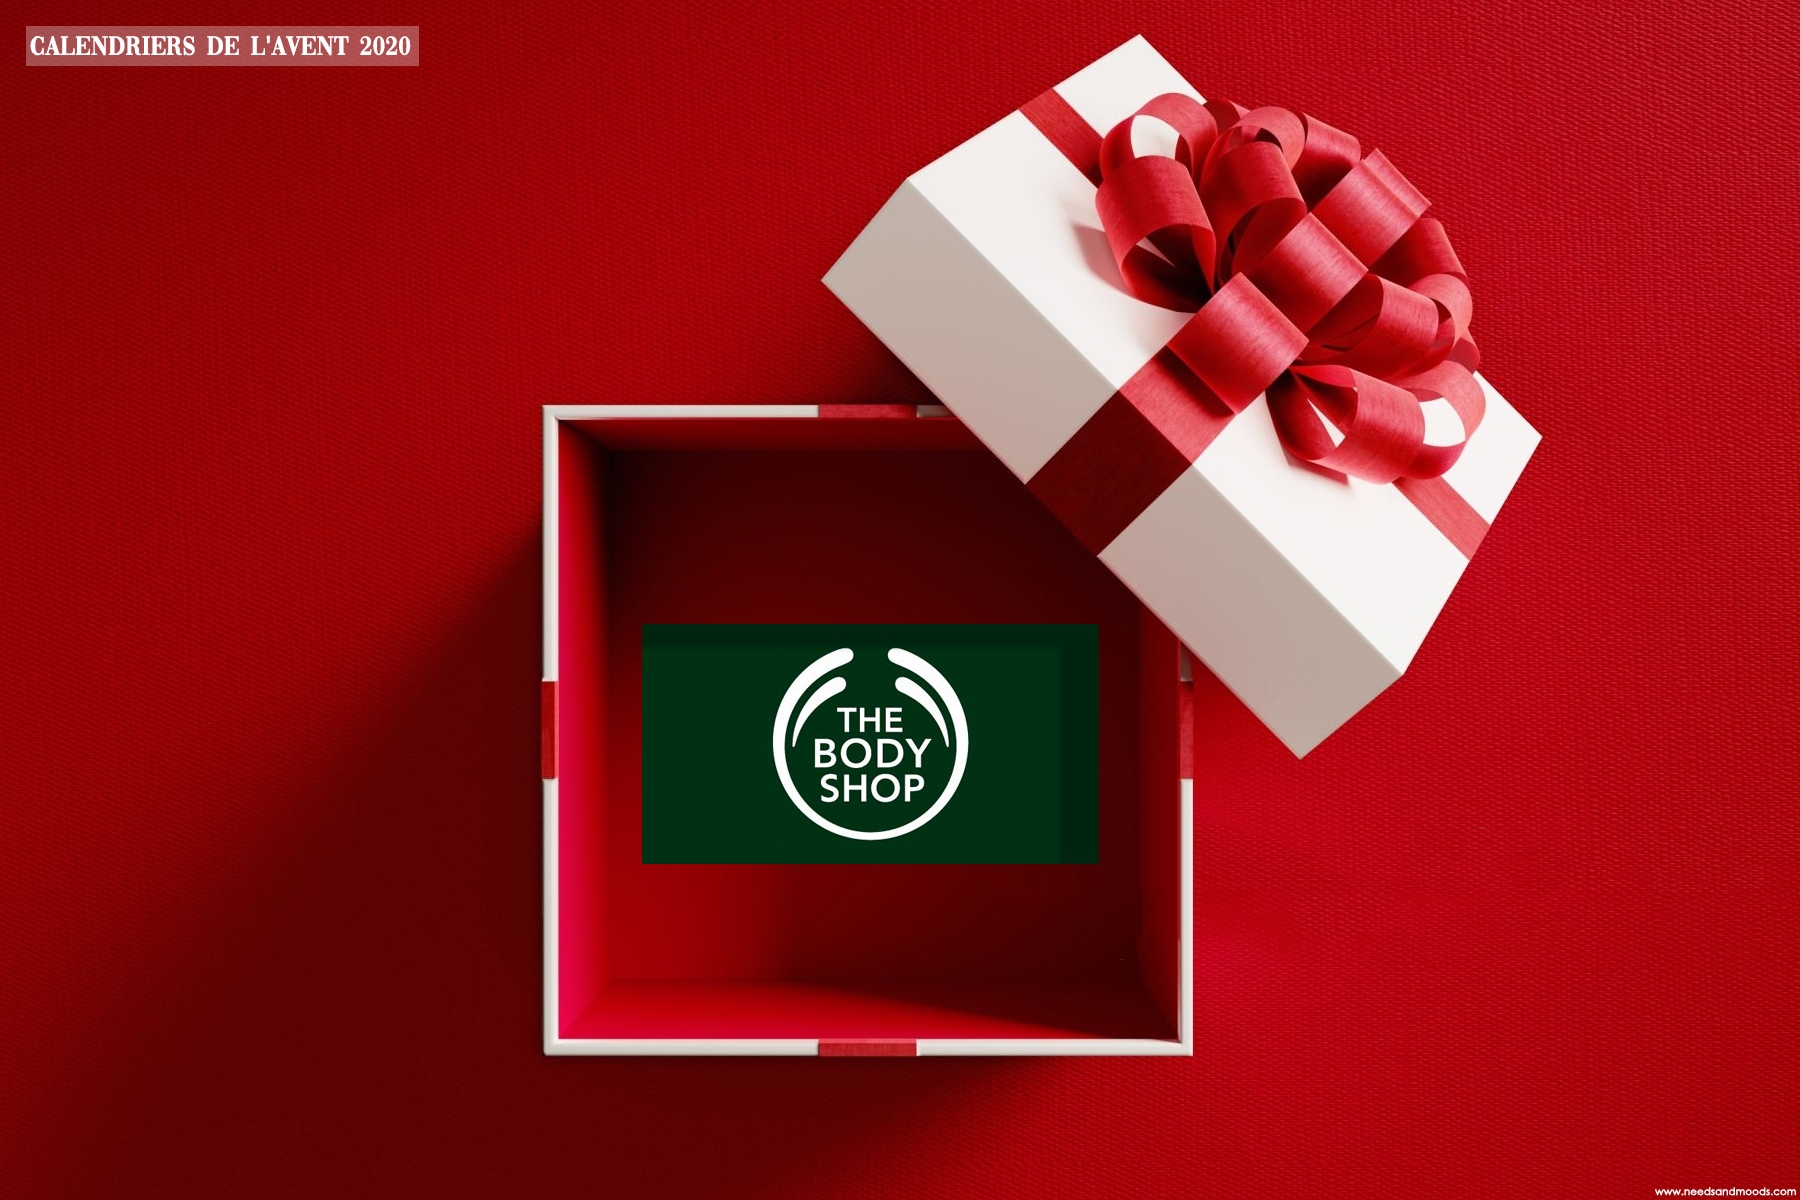 the body shop calendrier avent 2020